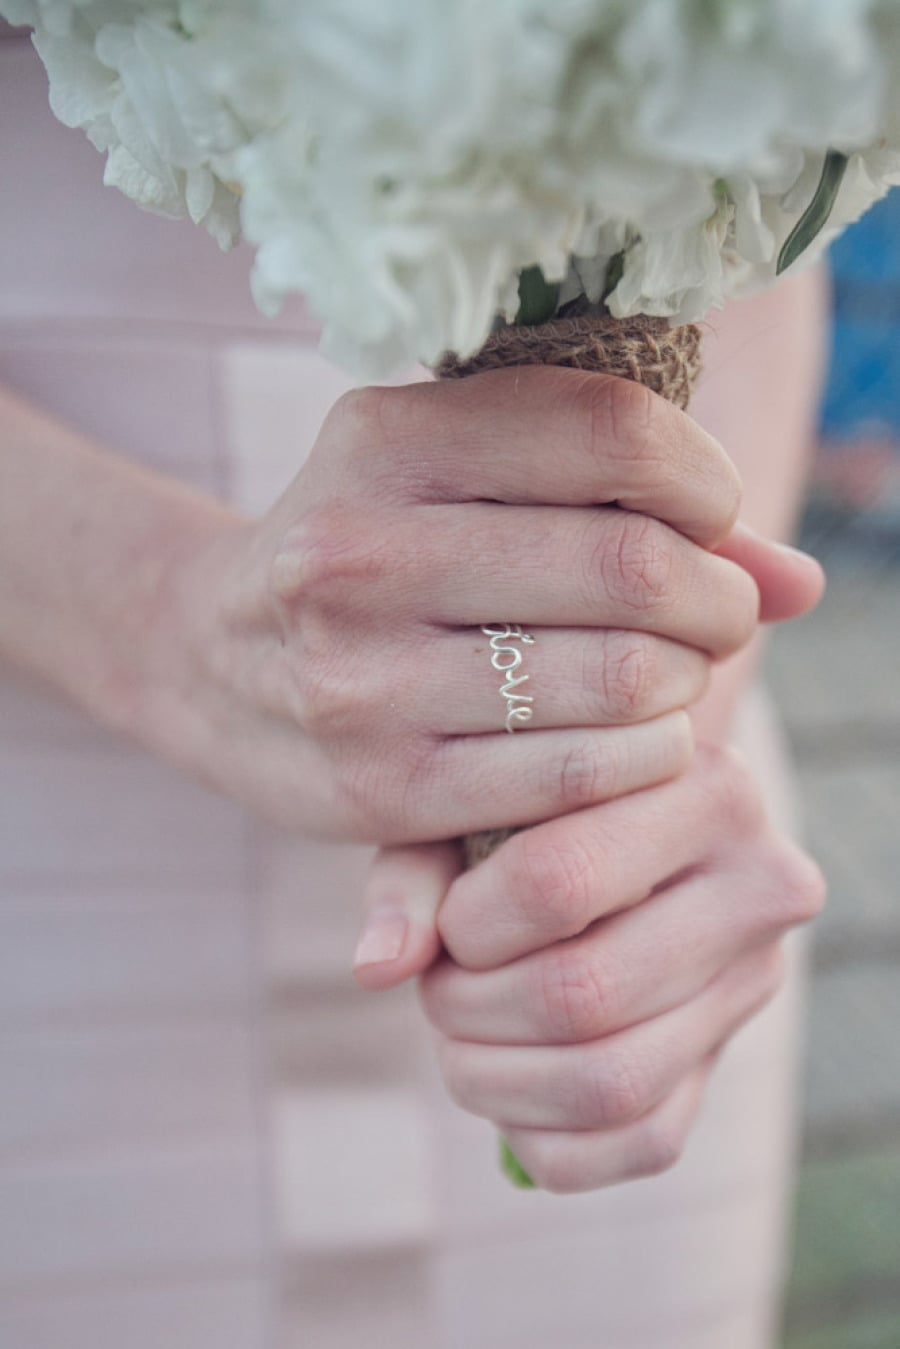 32. Ring While Holding Bouquet